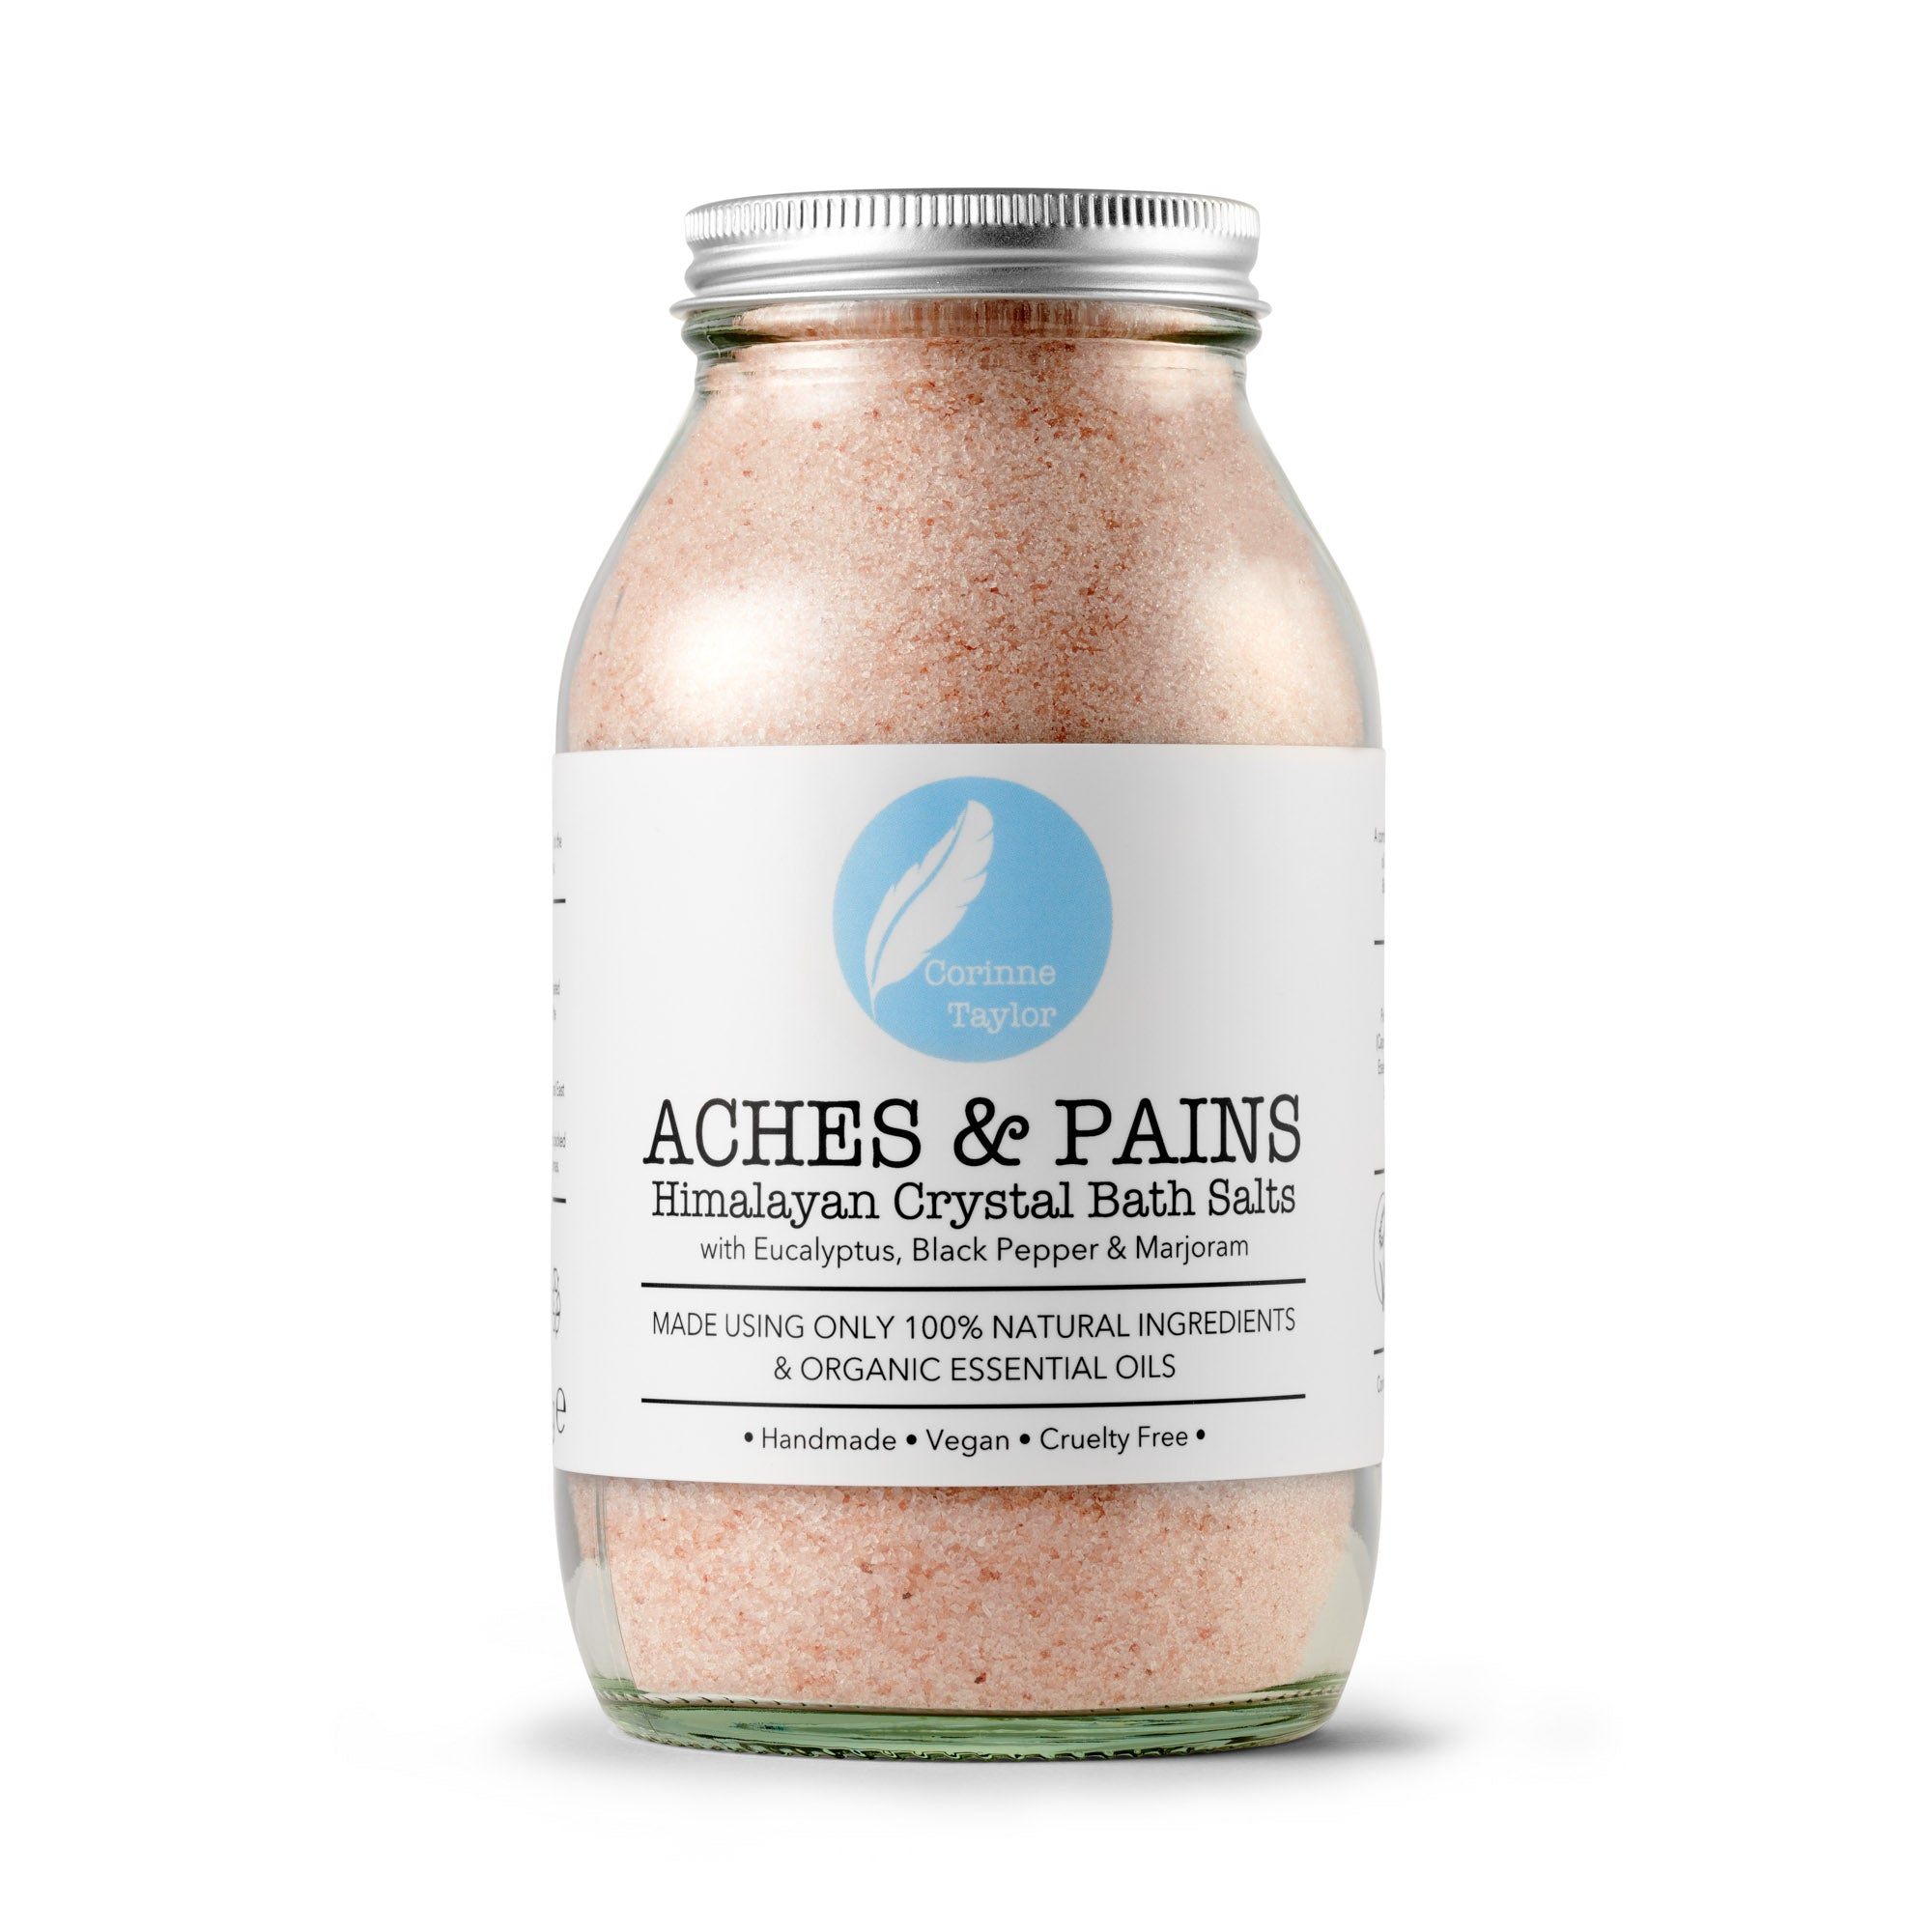 Aches and Pains Himalayan Bath Salts by Corinne Taylor. 100% natural, vegan, cruelty free, plant based. With organic Eucalyptus, Black Pepper and Sweet Marjoram essential oils.